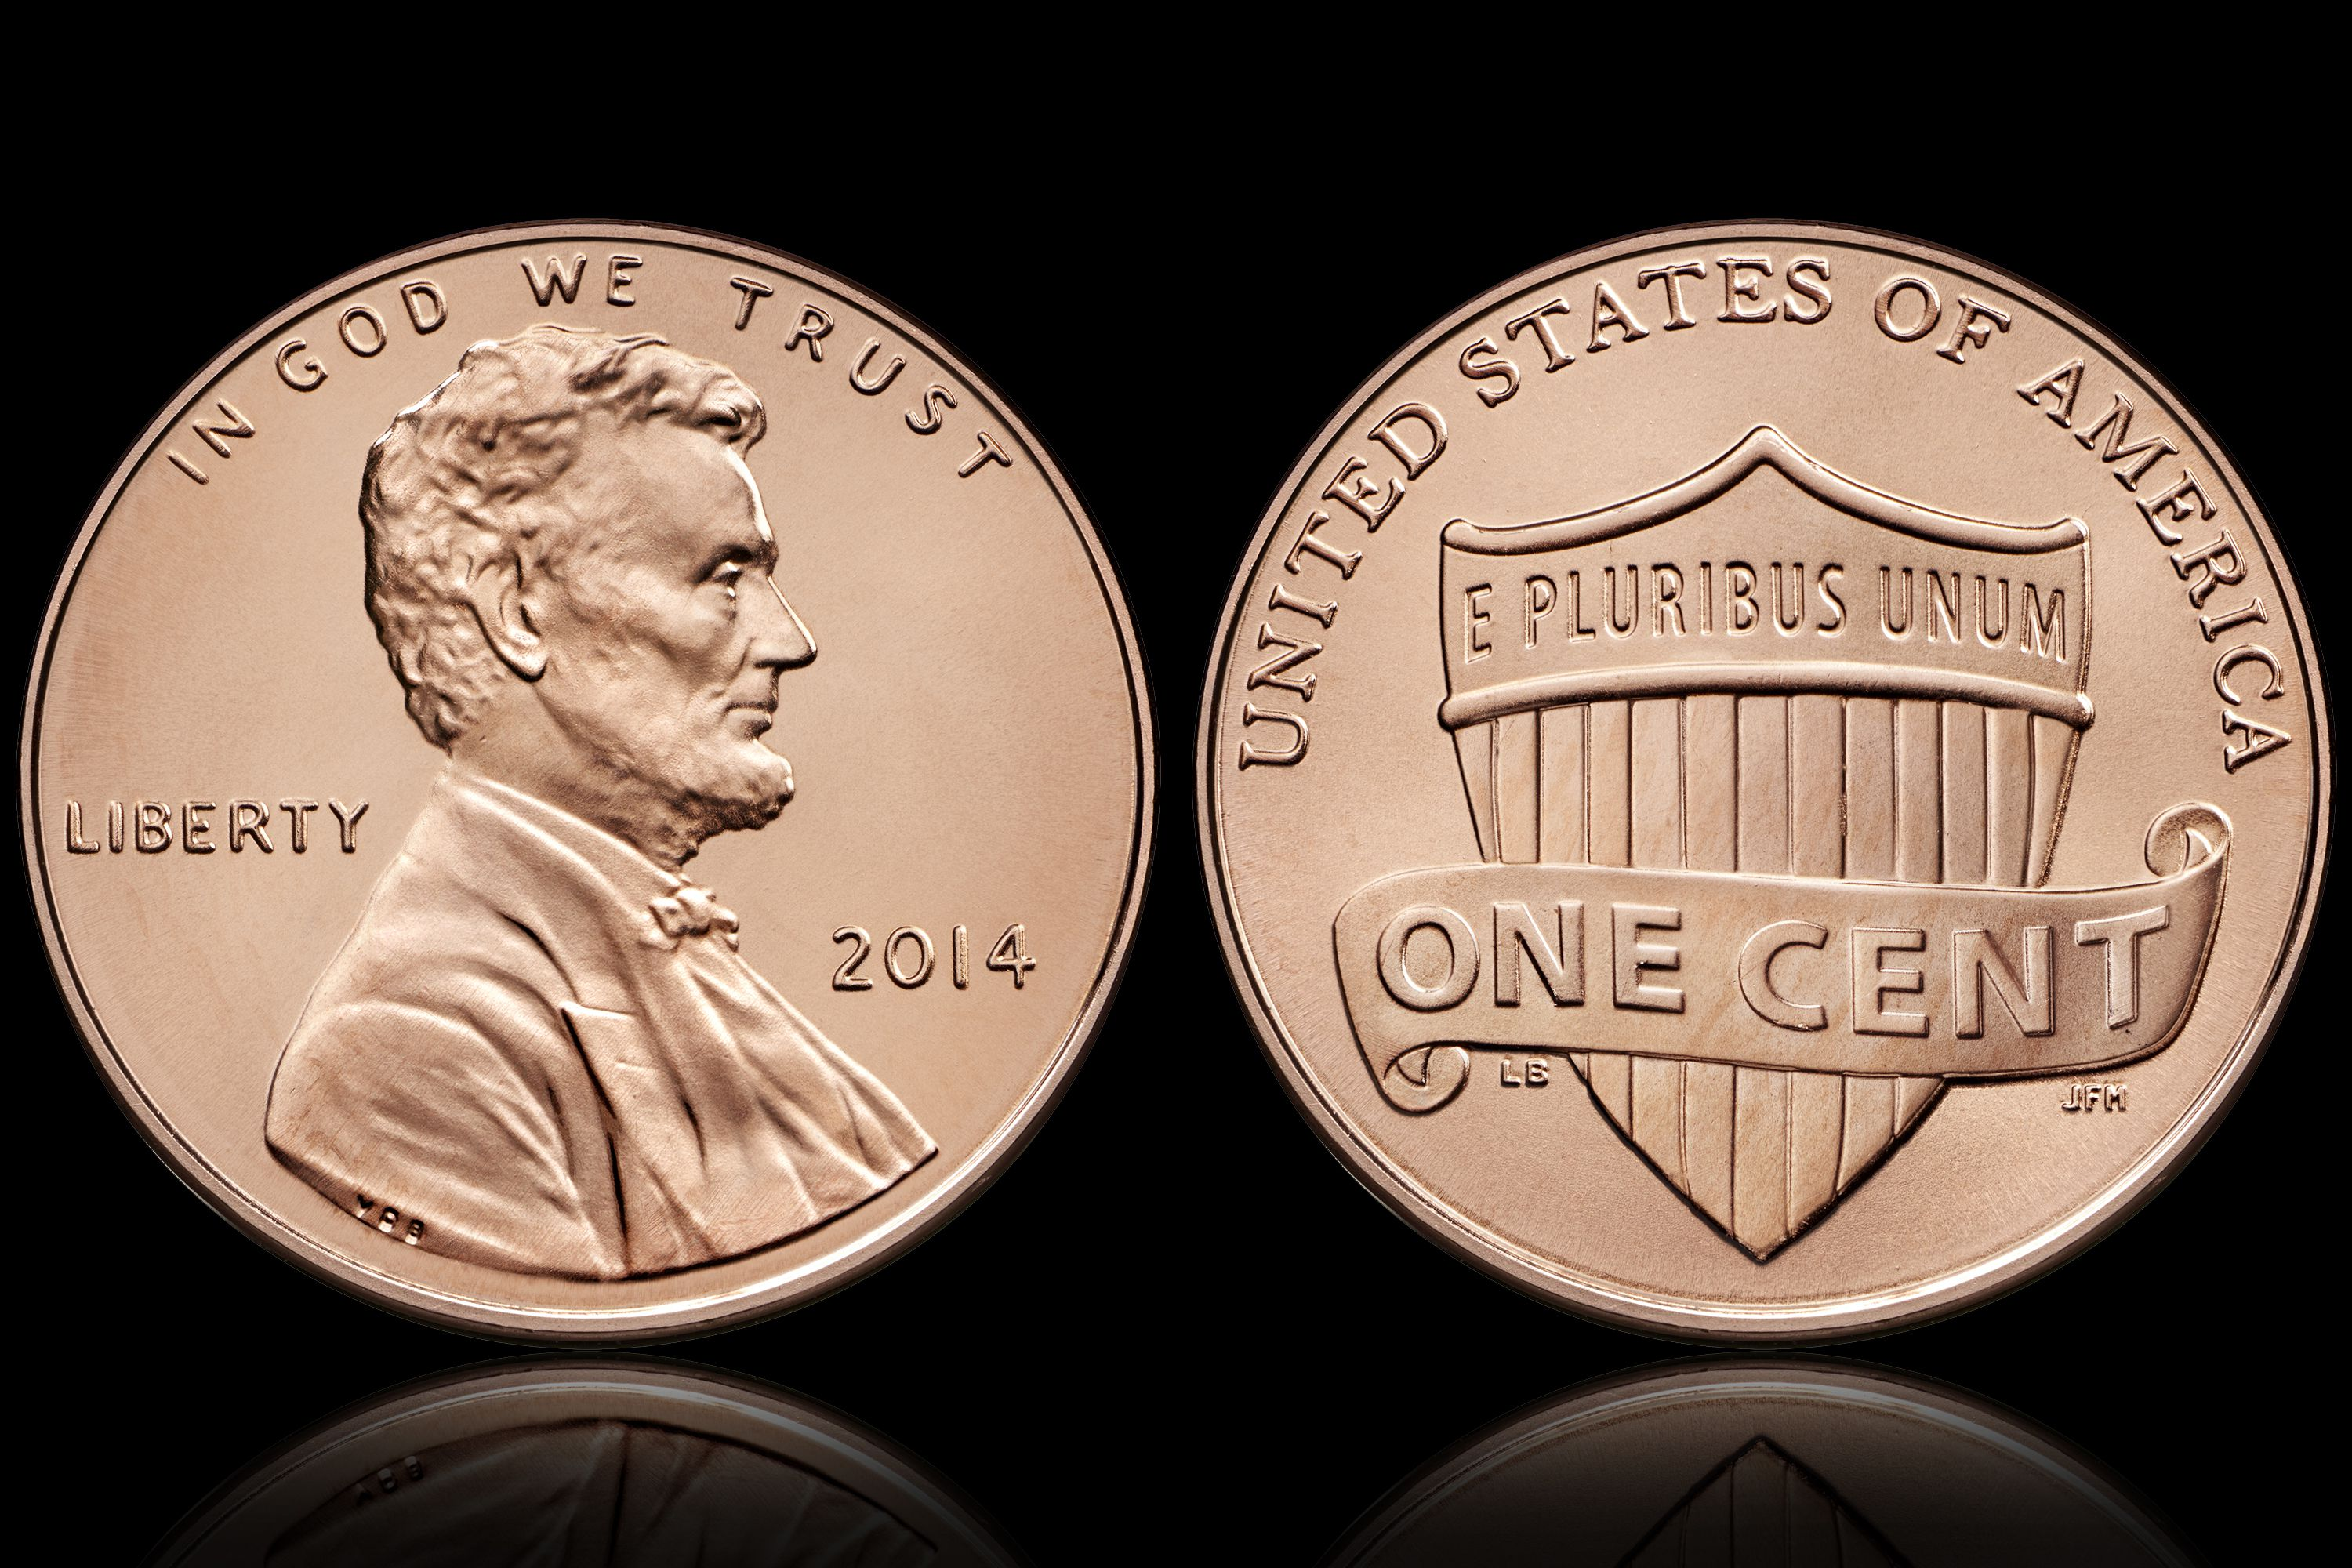 2010 Penny Design The Us One Cent Design For 2010